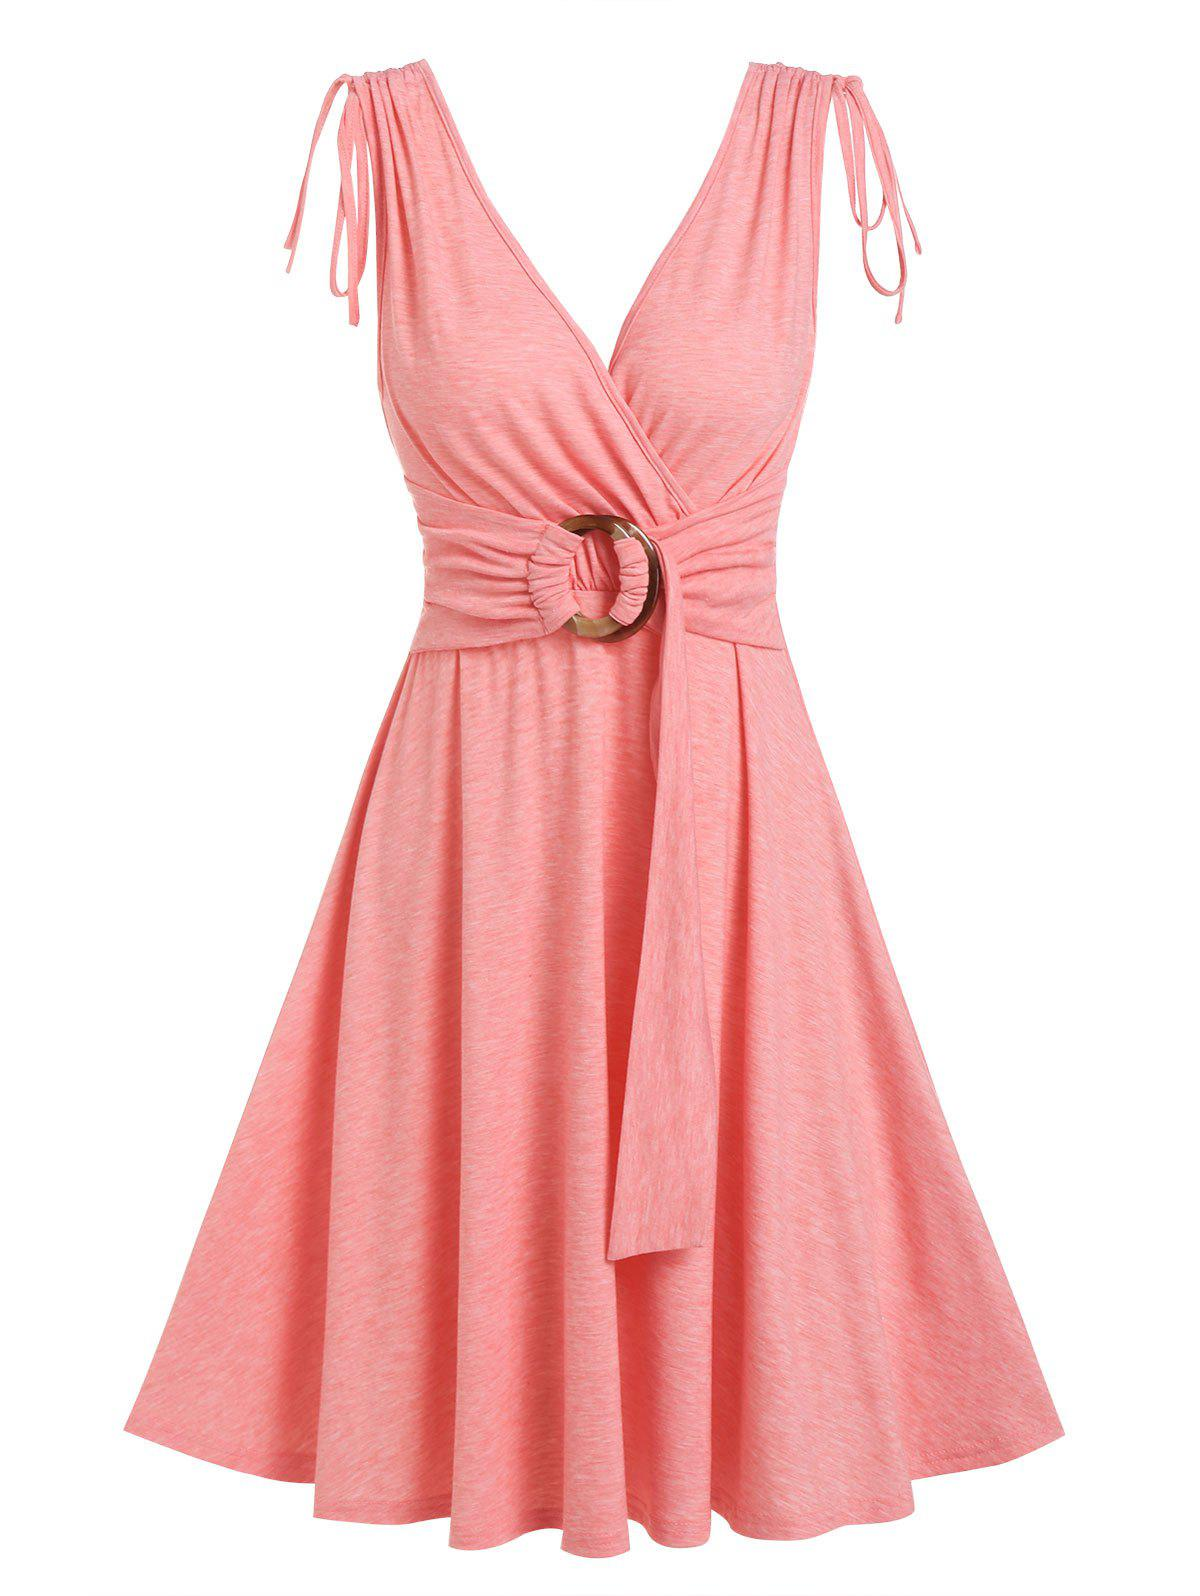 New O Ring Cinched Shoulders A Line Dress